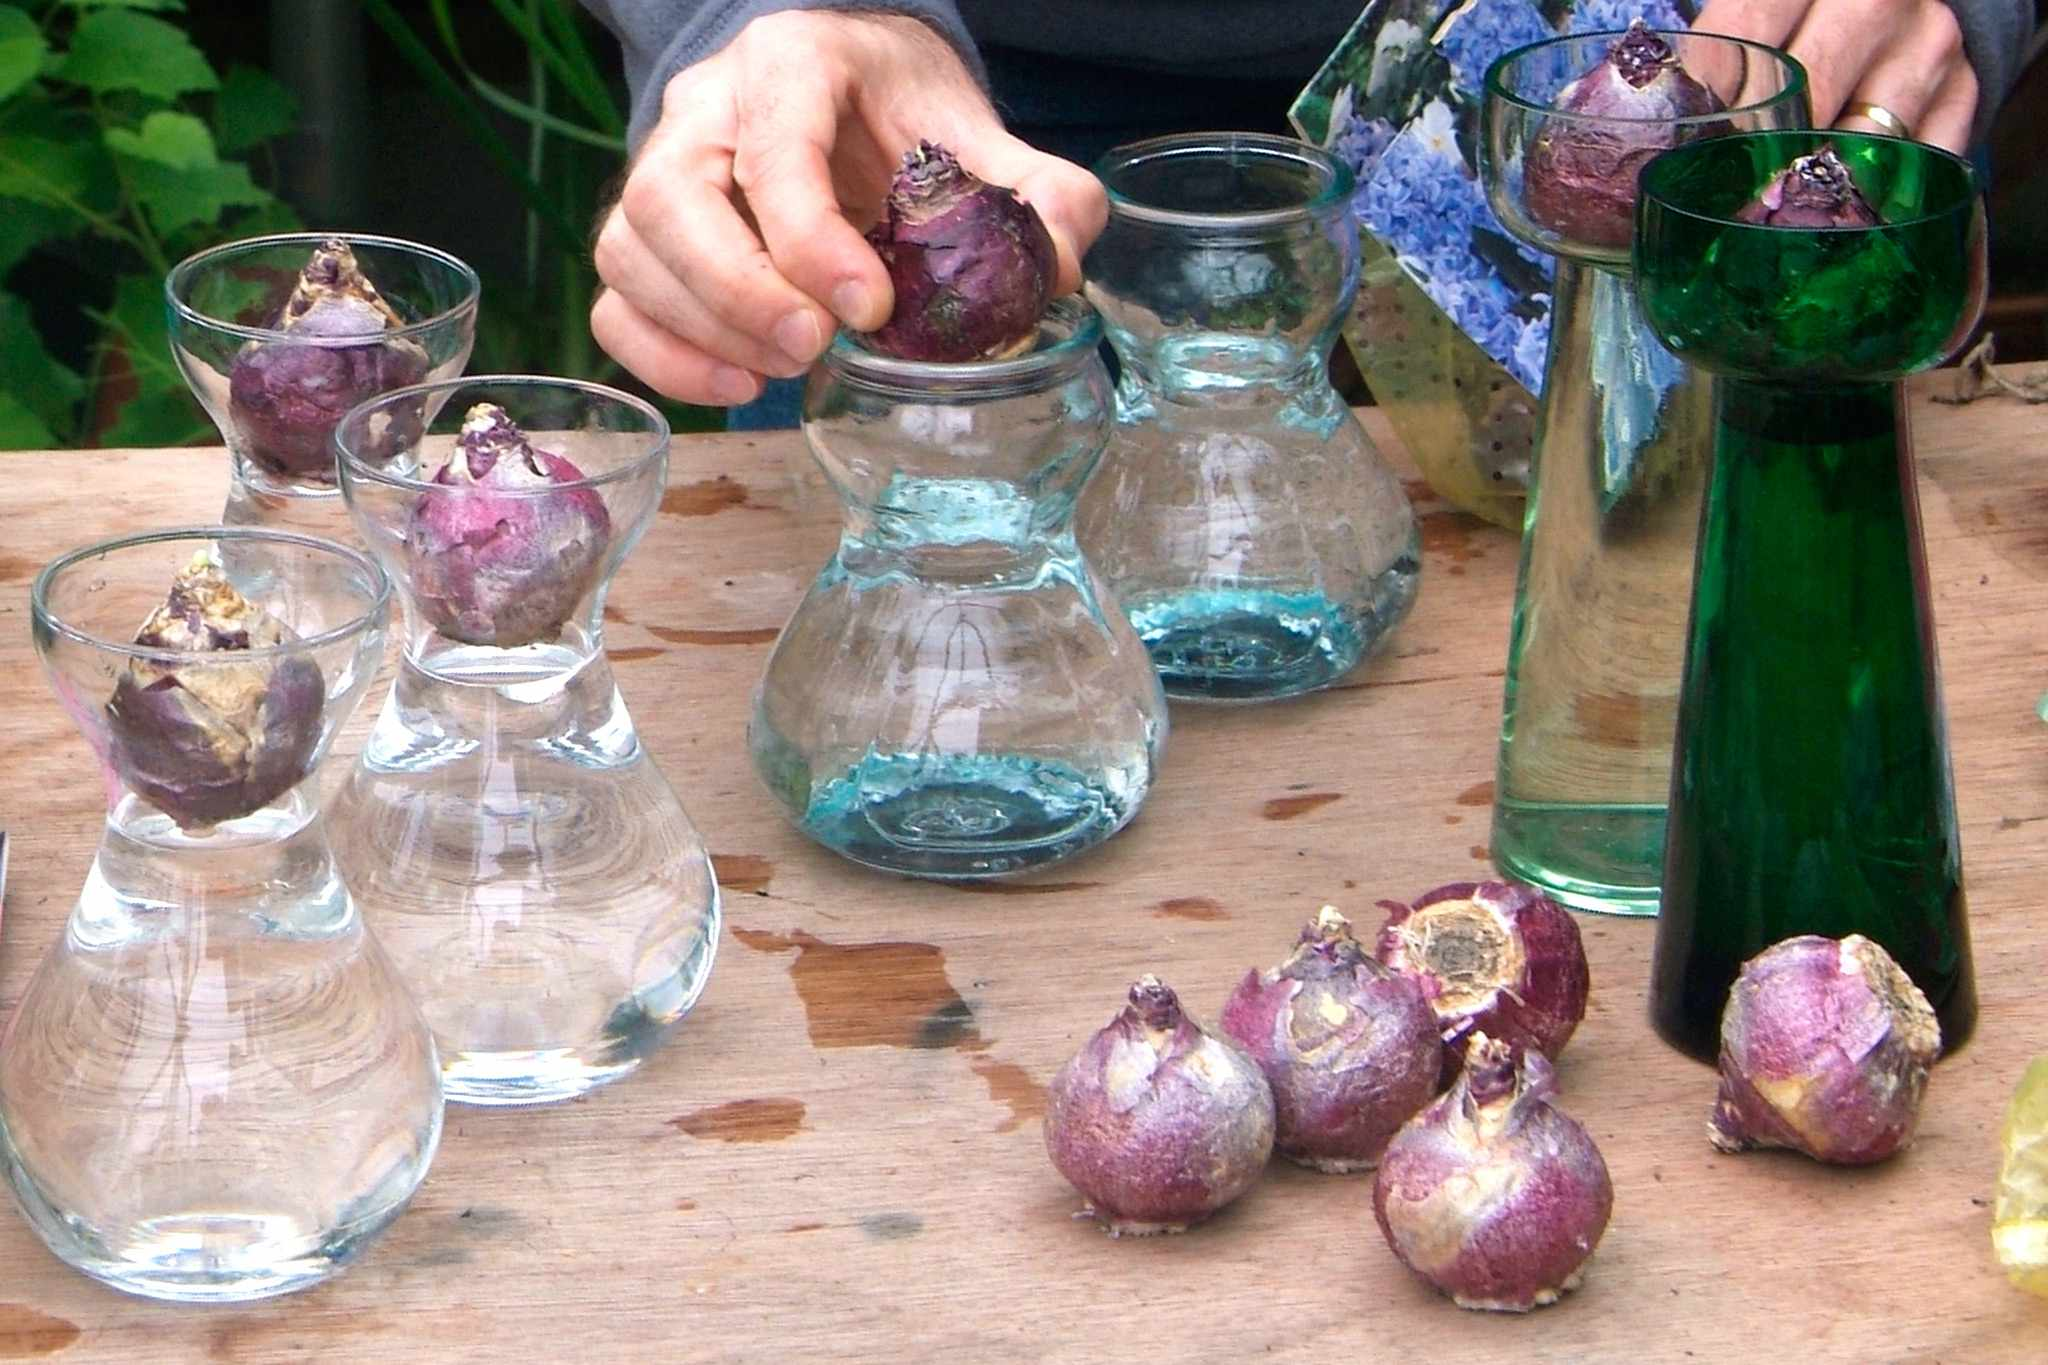 Growing hyacinths in a glass